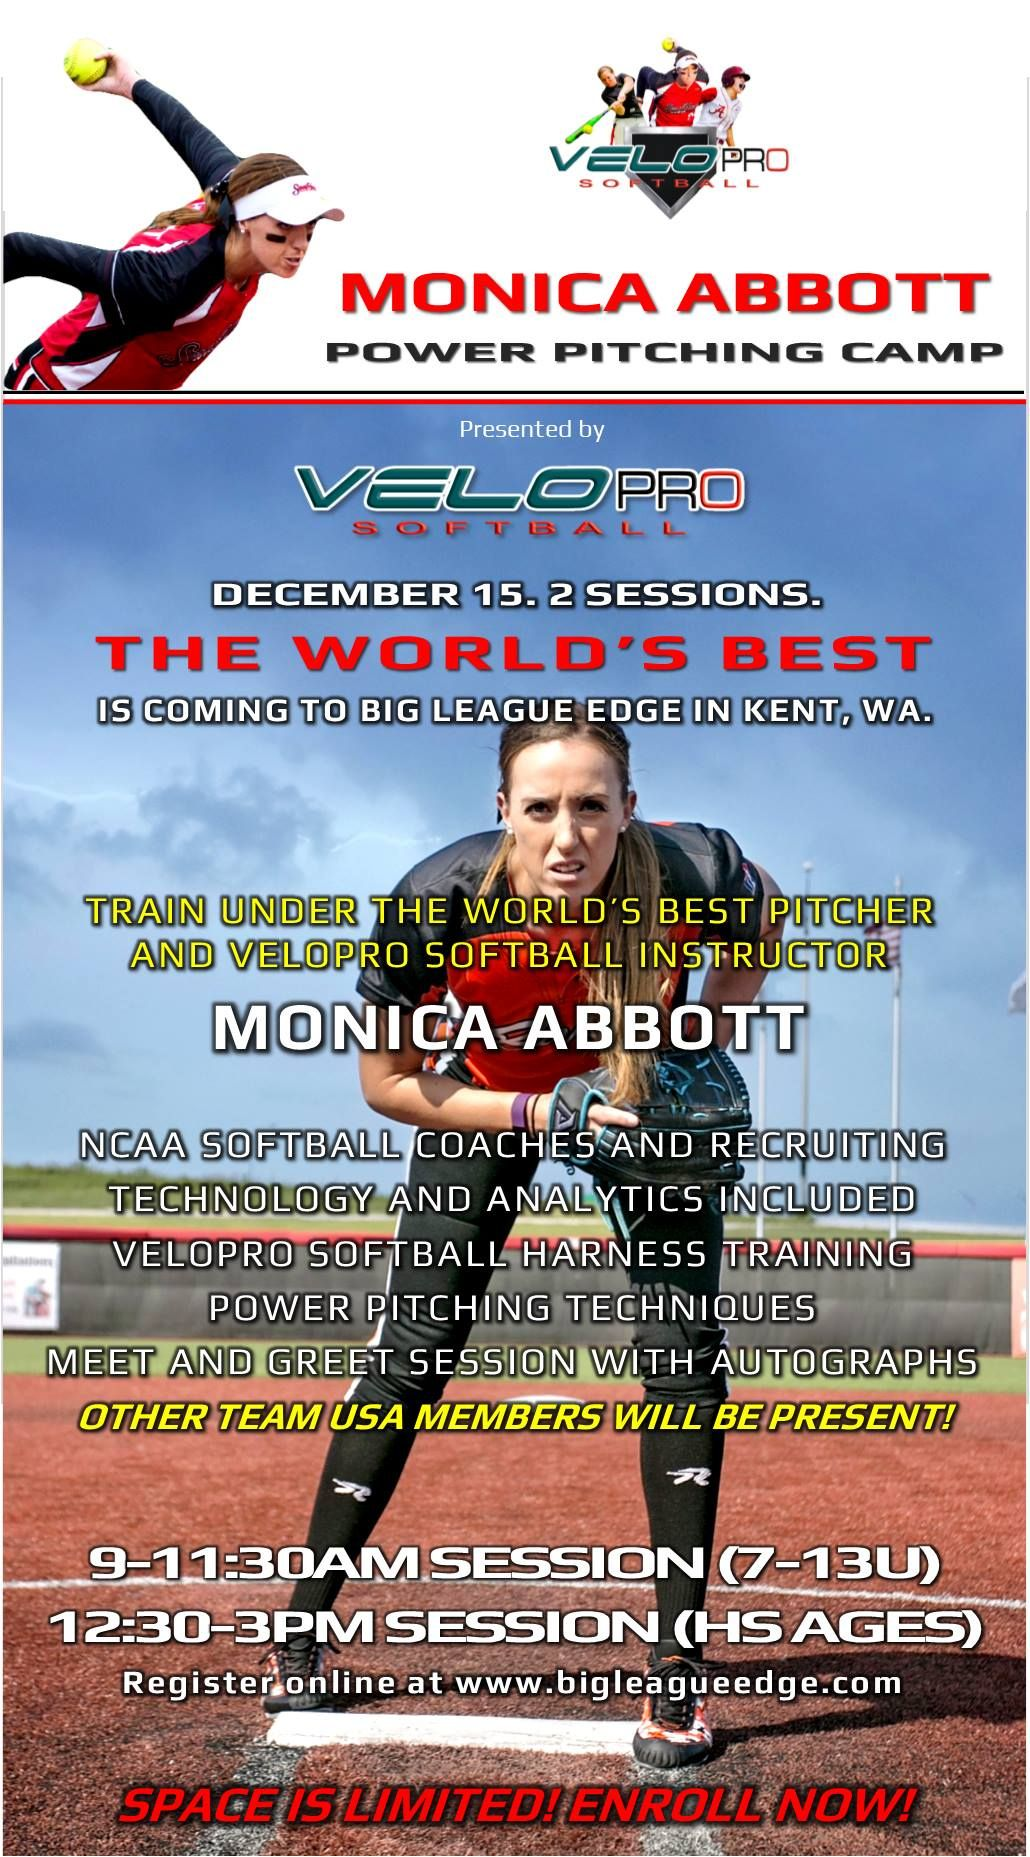 We Are 75 Filled For The Monica Abbott Power Pitching Camp Again Tremendous Opportunity That Is Not Found In The Pn Monica Abbott Softball Baseball Training